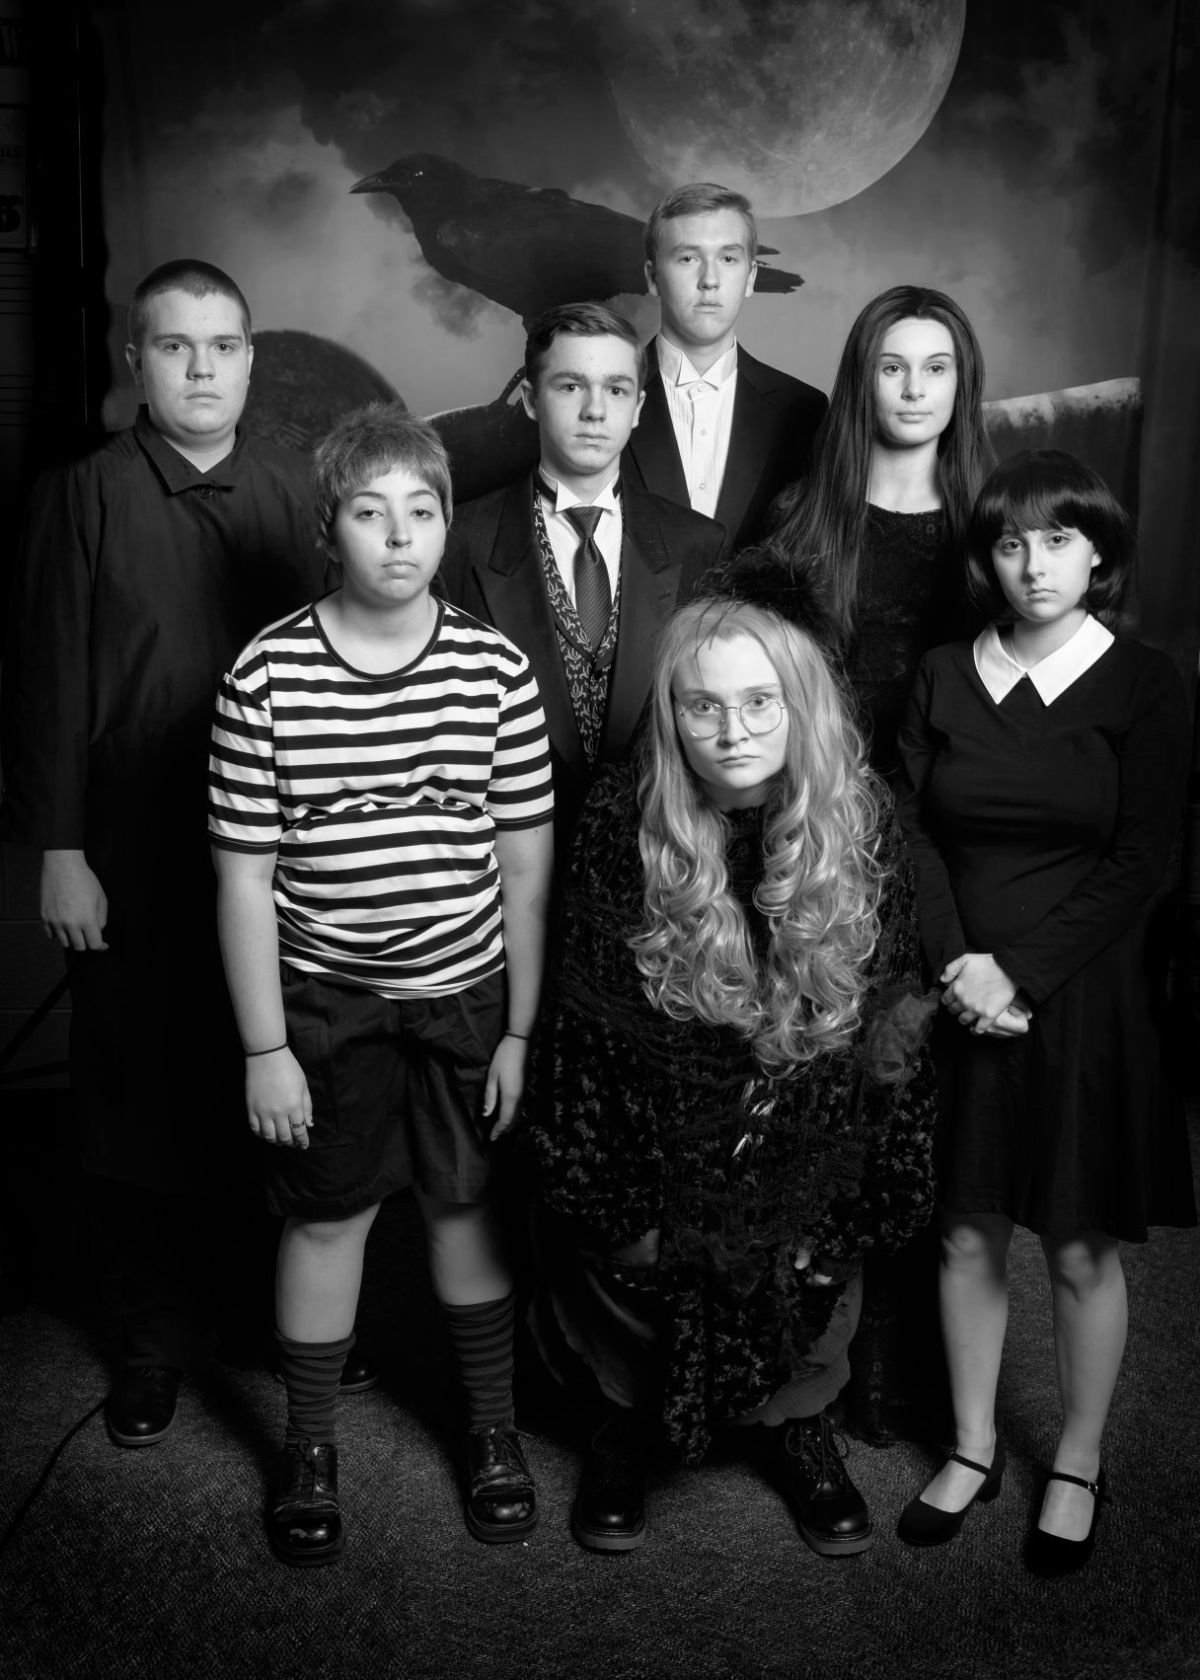 Union Grove High School to present 'The Addams Family' musical   A+   journaltimes.com